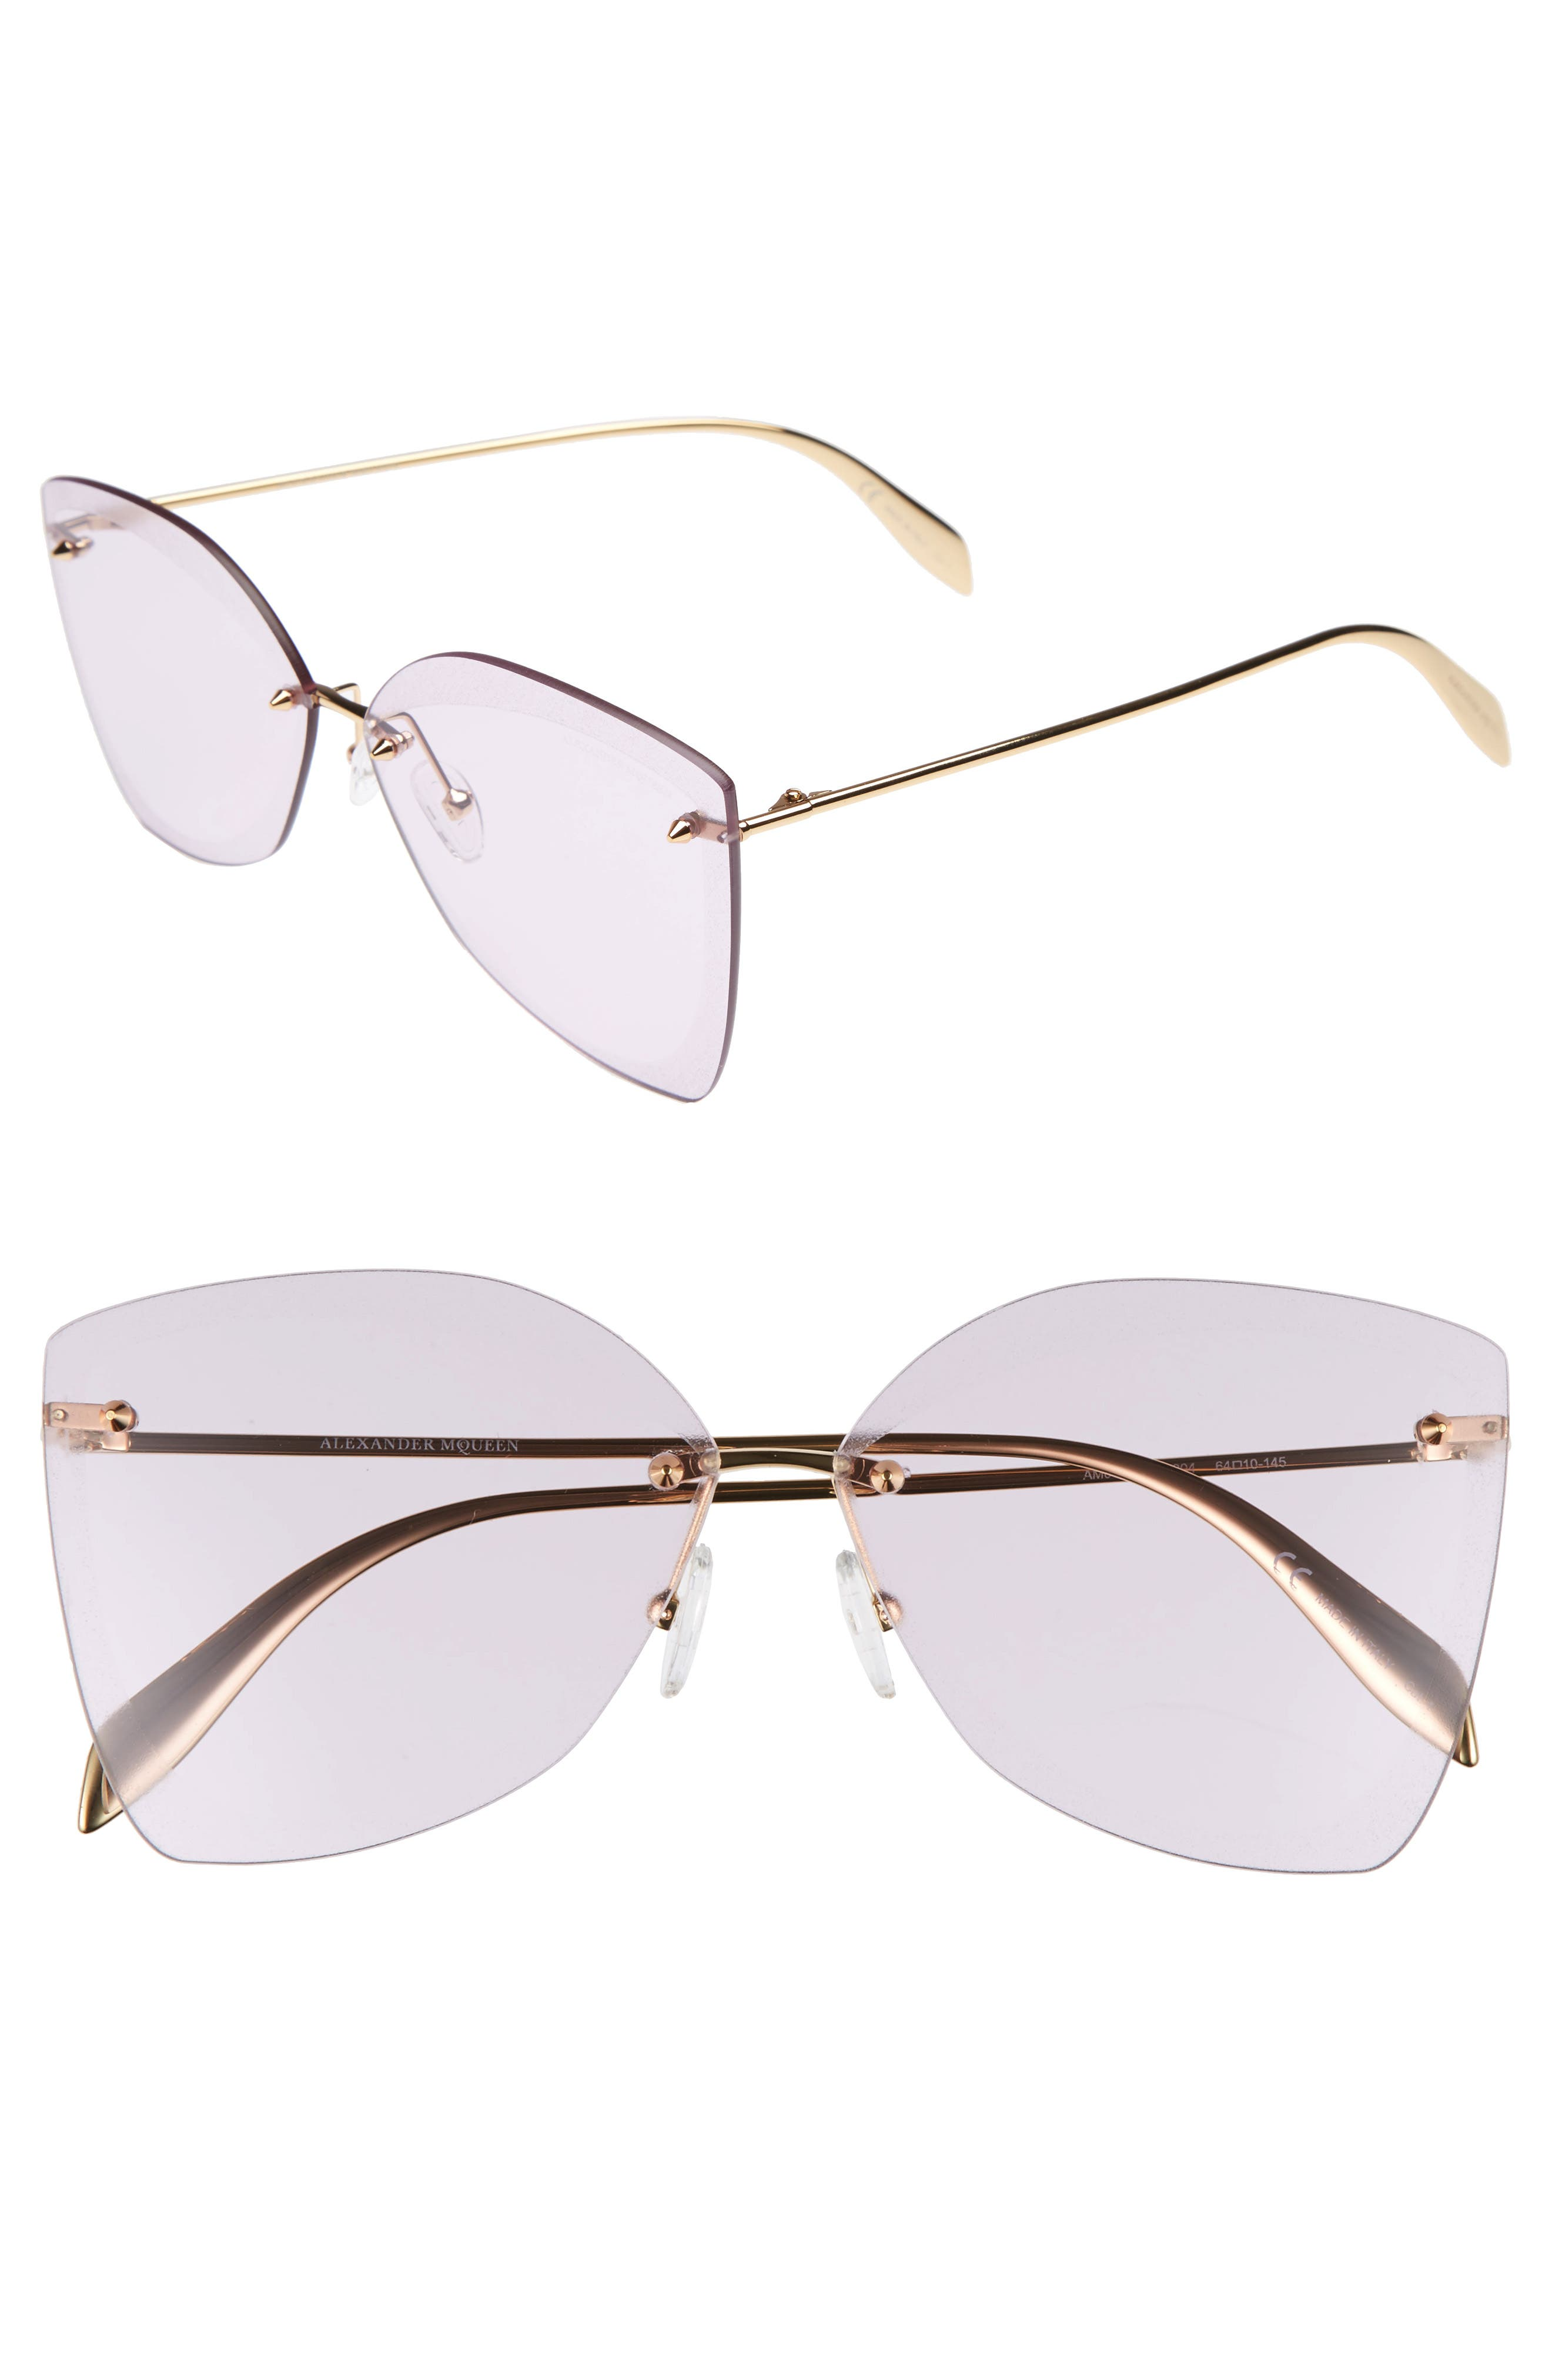 Rimless aviator sunglasses Alexander McQueen Outlet Excellent Clearance Supply Low Price Fee Shipping Clearance Low Shipping Fee 8CS5g